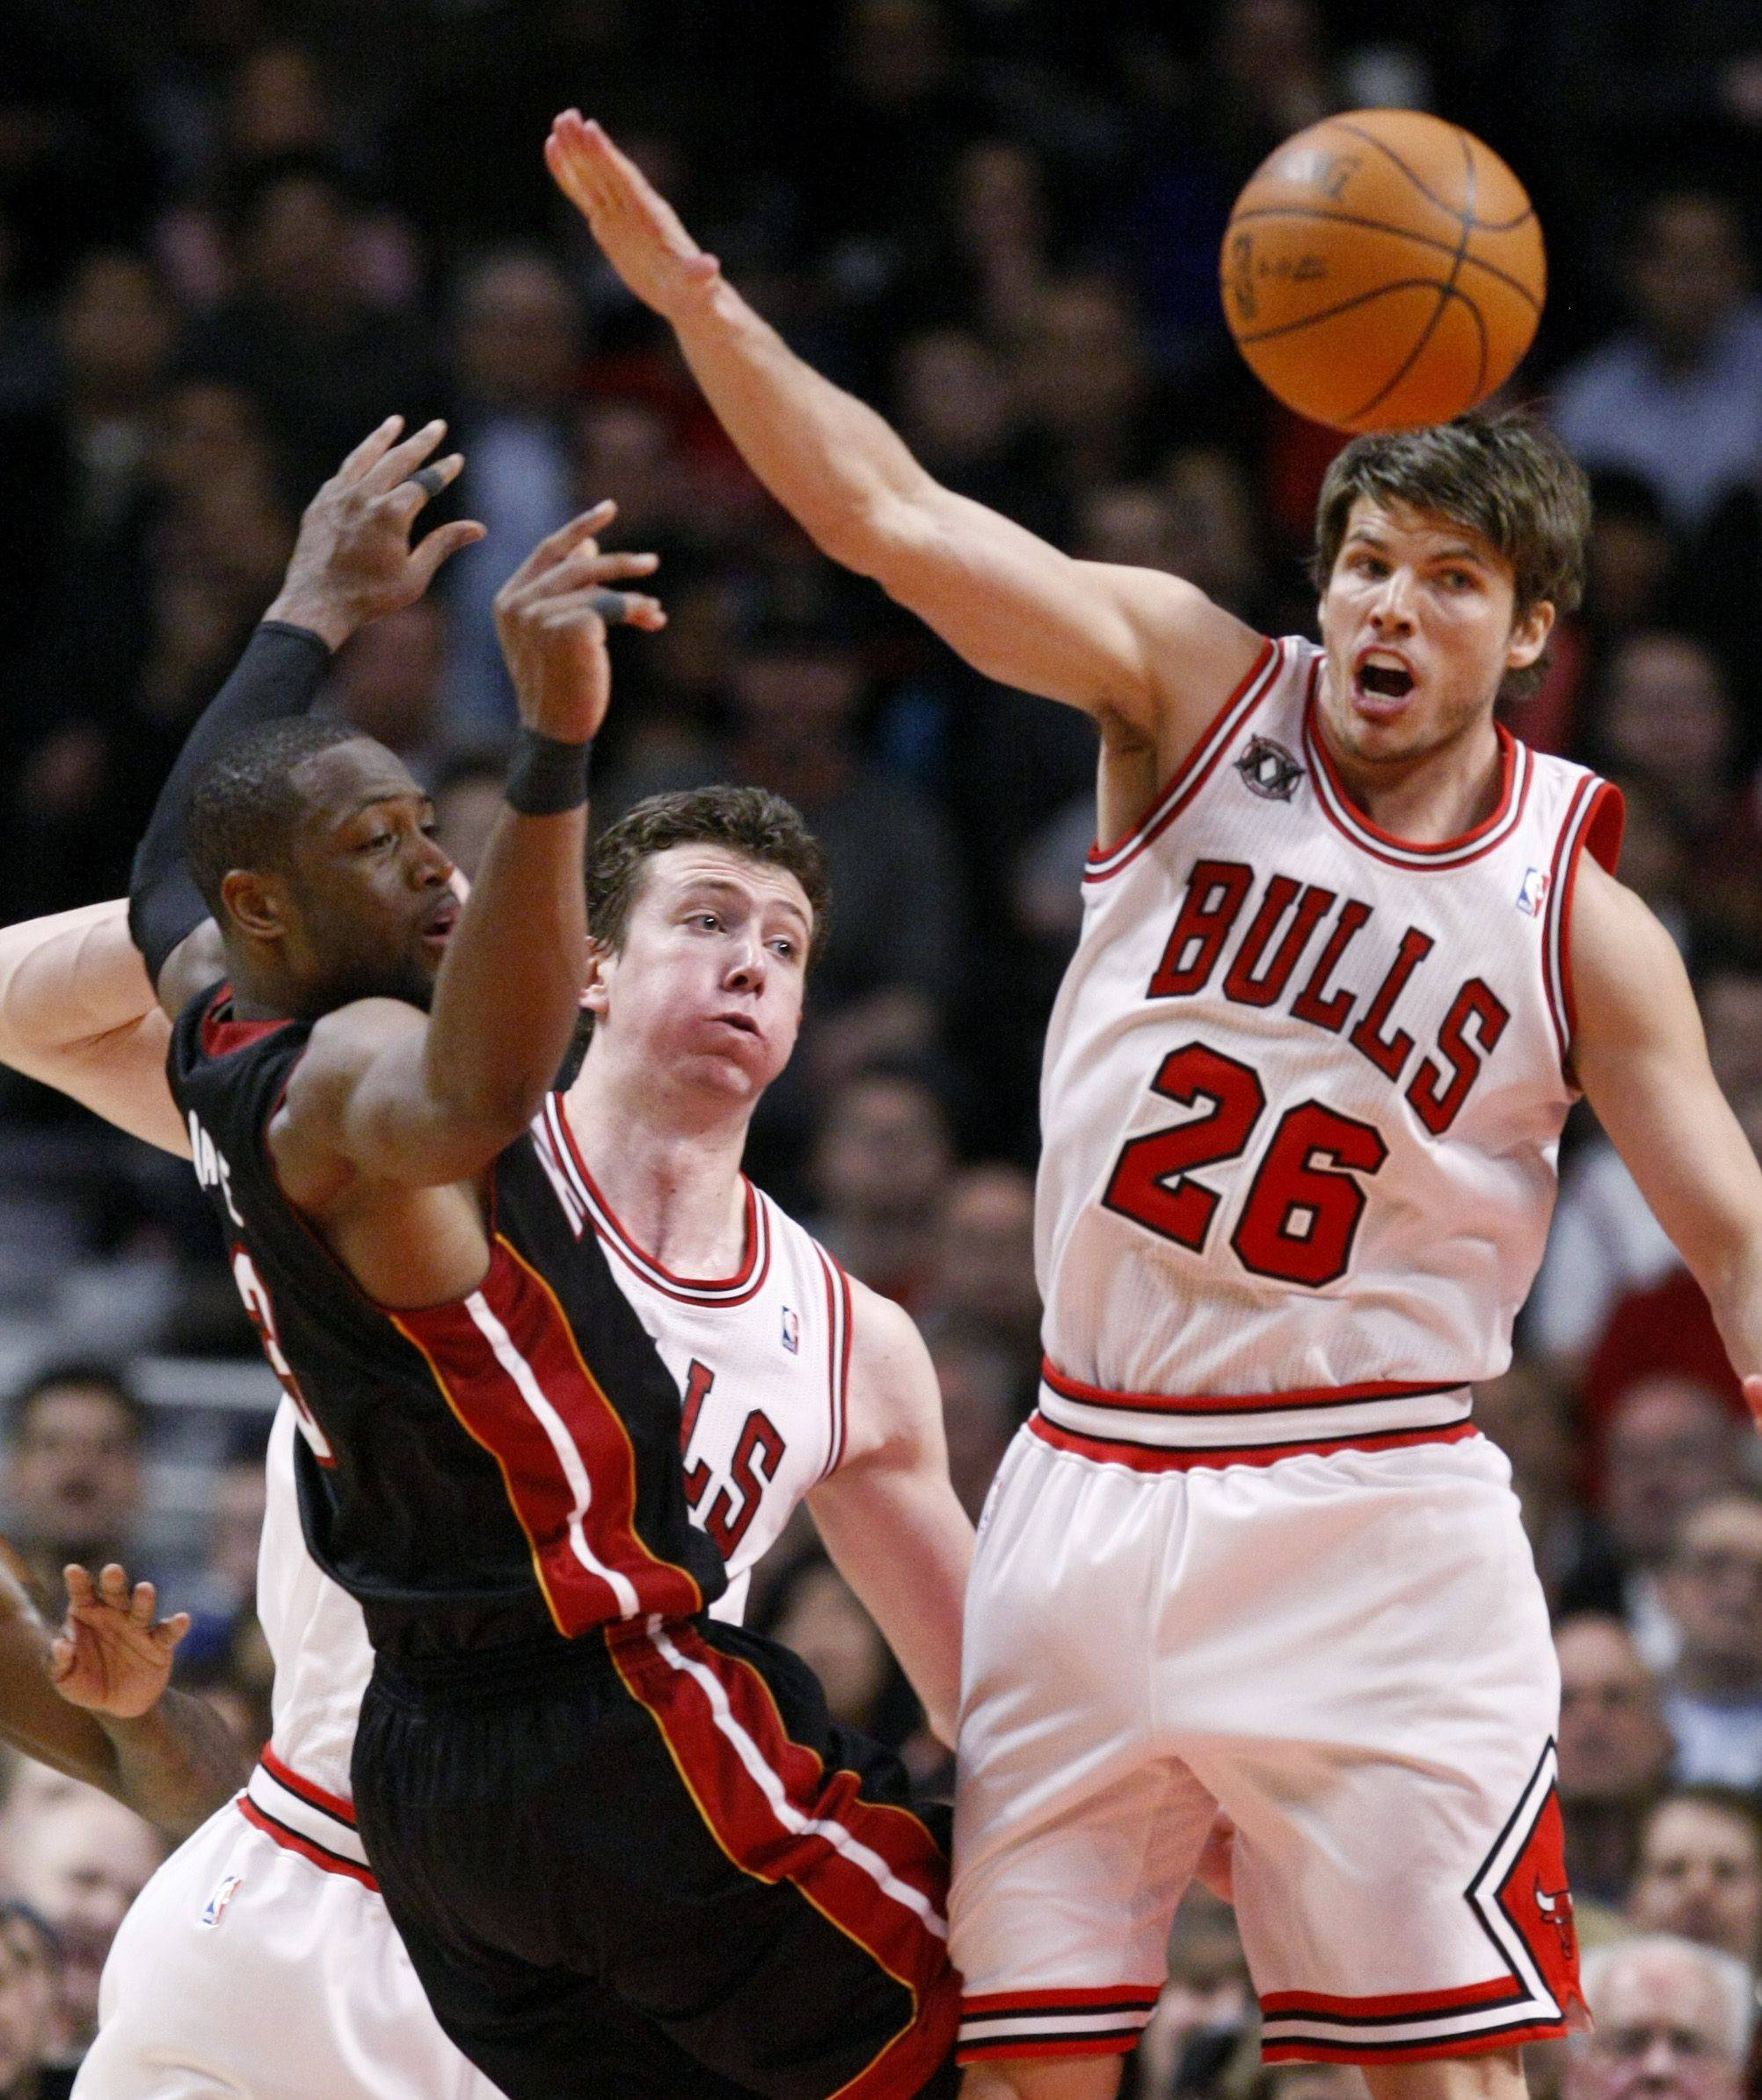 Miami Heat shooting guard Dwyane Wade, left, is forced to pass by the defense of Chicago Bulls center Omer Asik, center, and Kyle Korver, during the second half of an NBA basketball game Thursday, Feb. 24, 2011, in Chicago. The Bulls won 93-89.